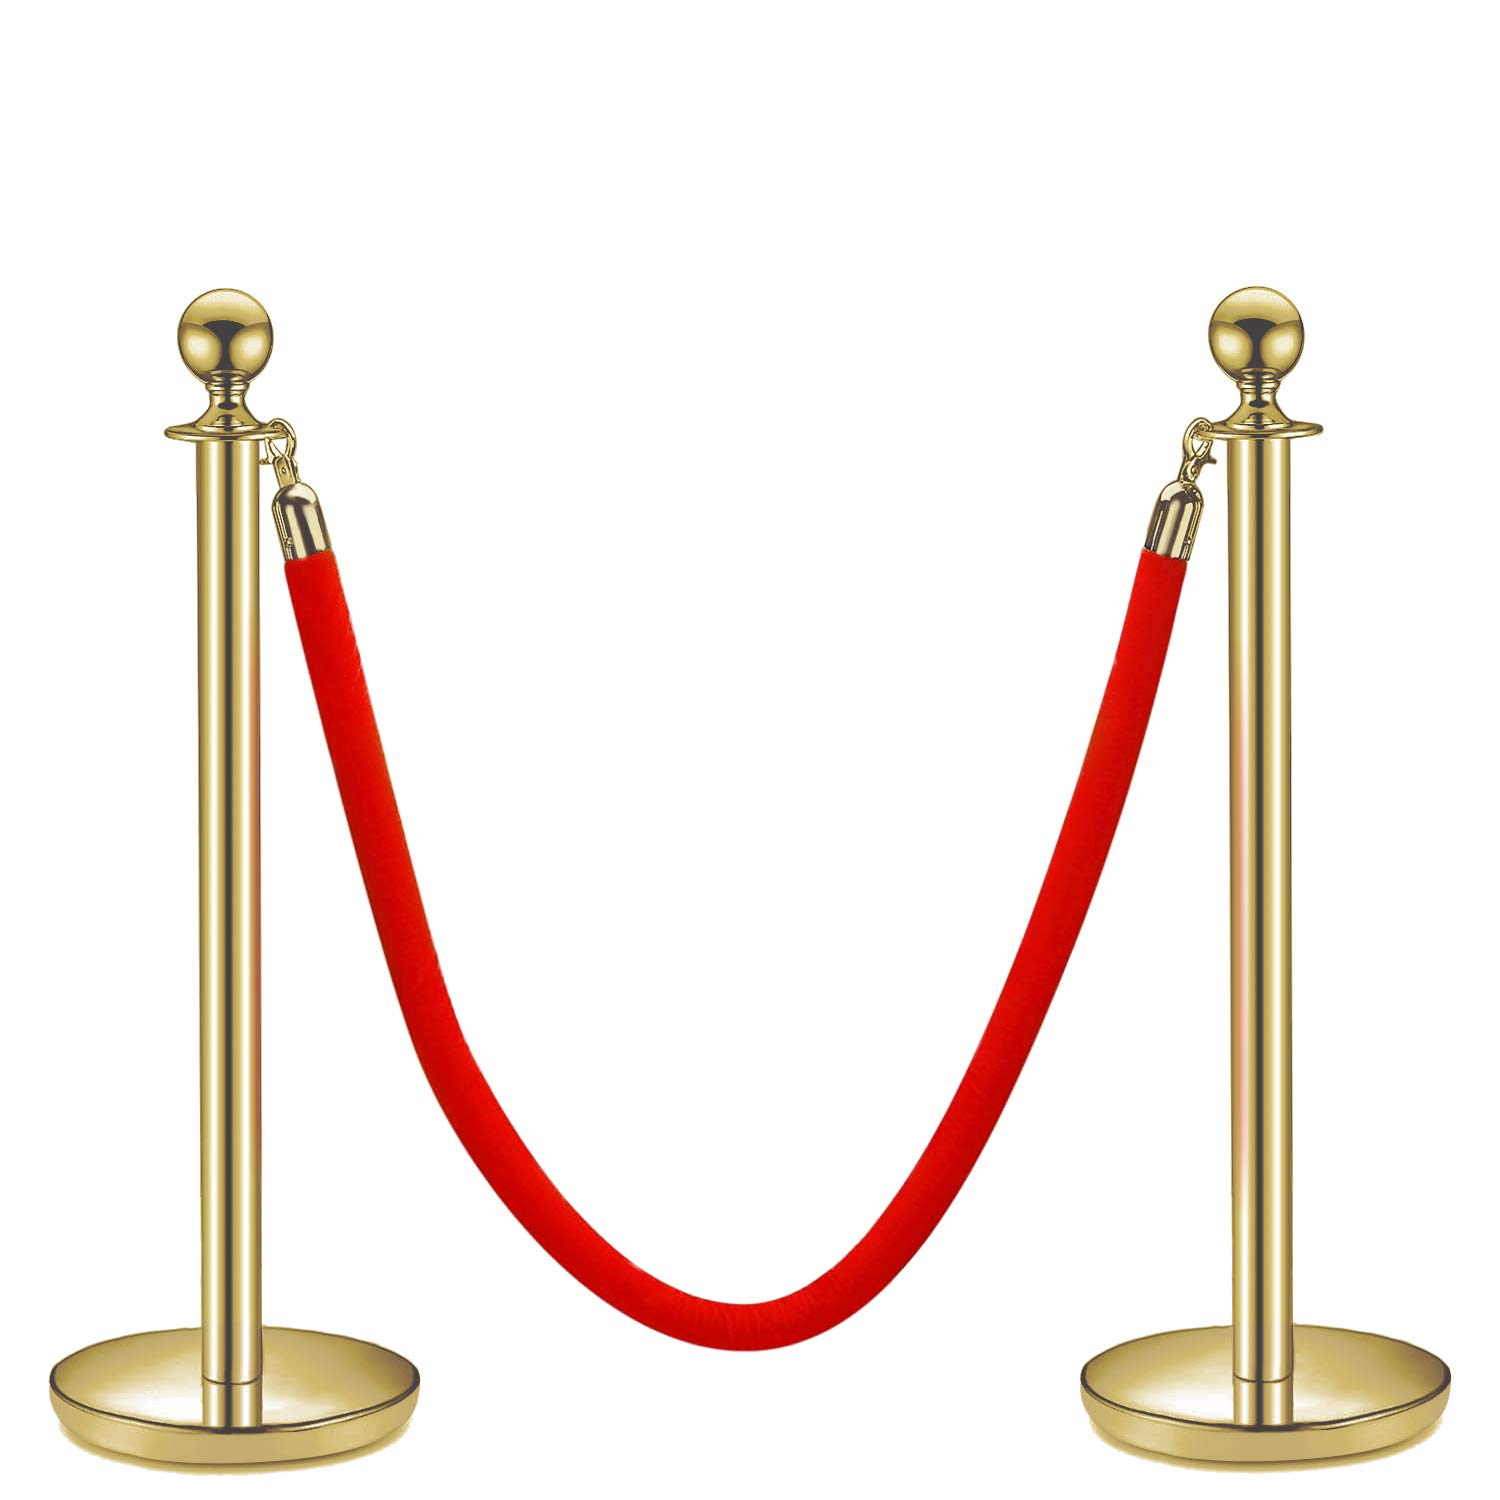 Flexzion VIP Stanchion with Red Velvet Rope Stainless Steel Set of 2 Posts - Ball Round Top Crowd Control Queue Pole Barrier Ideal/f Movie Theaters, Red Carpet Party, Line Dividers Decoration (Gold)